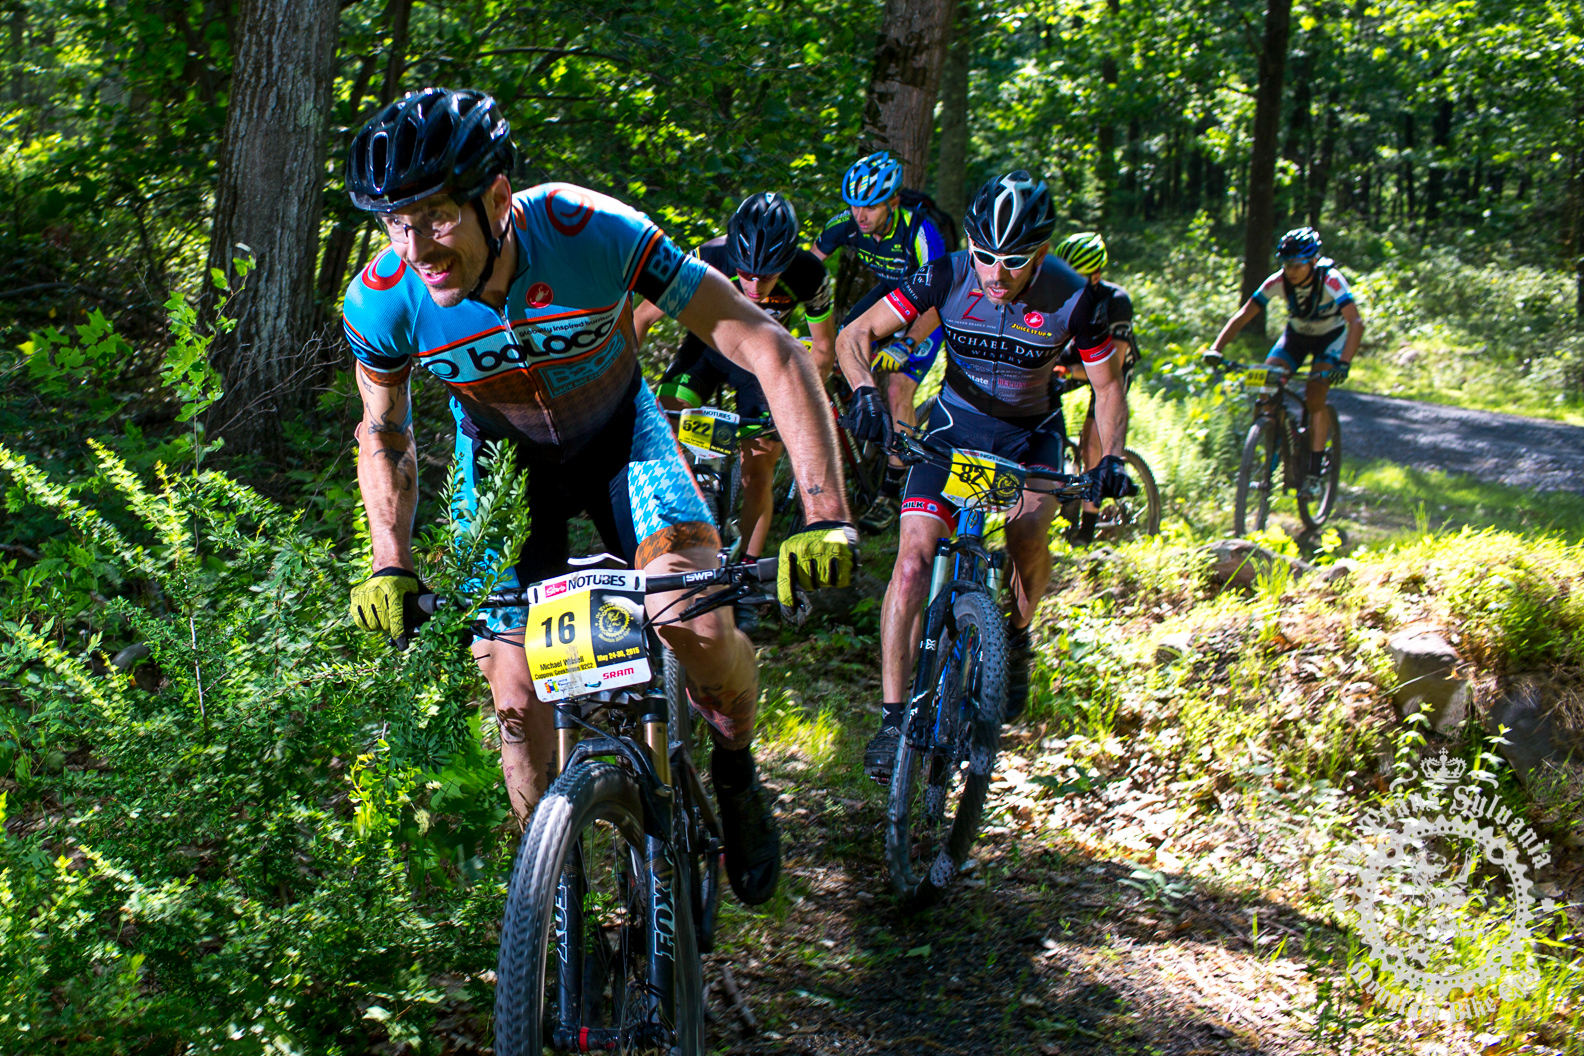 Michael Wissell (Cuppow/Geekhouse/B2C2) leads out a group through the woods at the NoTubes Trans-Sylvania Epic. Photo by the Trans-Sylvania Epic Media Team